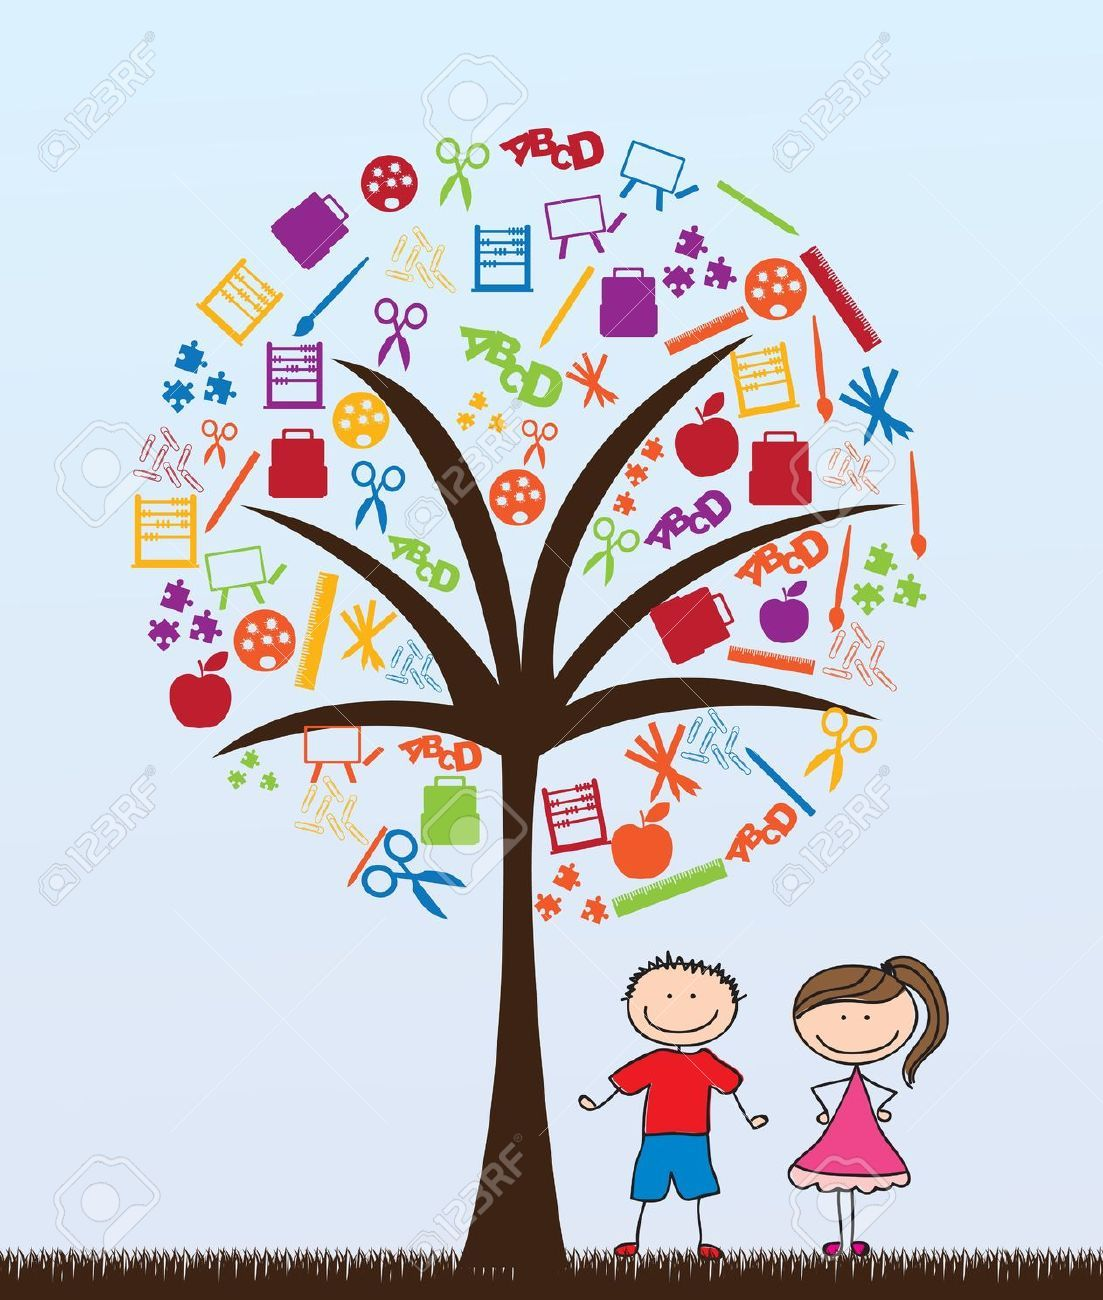 Church Nursery Pictures Google Search: Children And Tree Clipart - Google Search